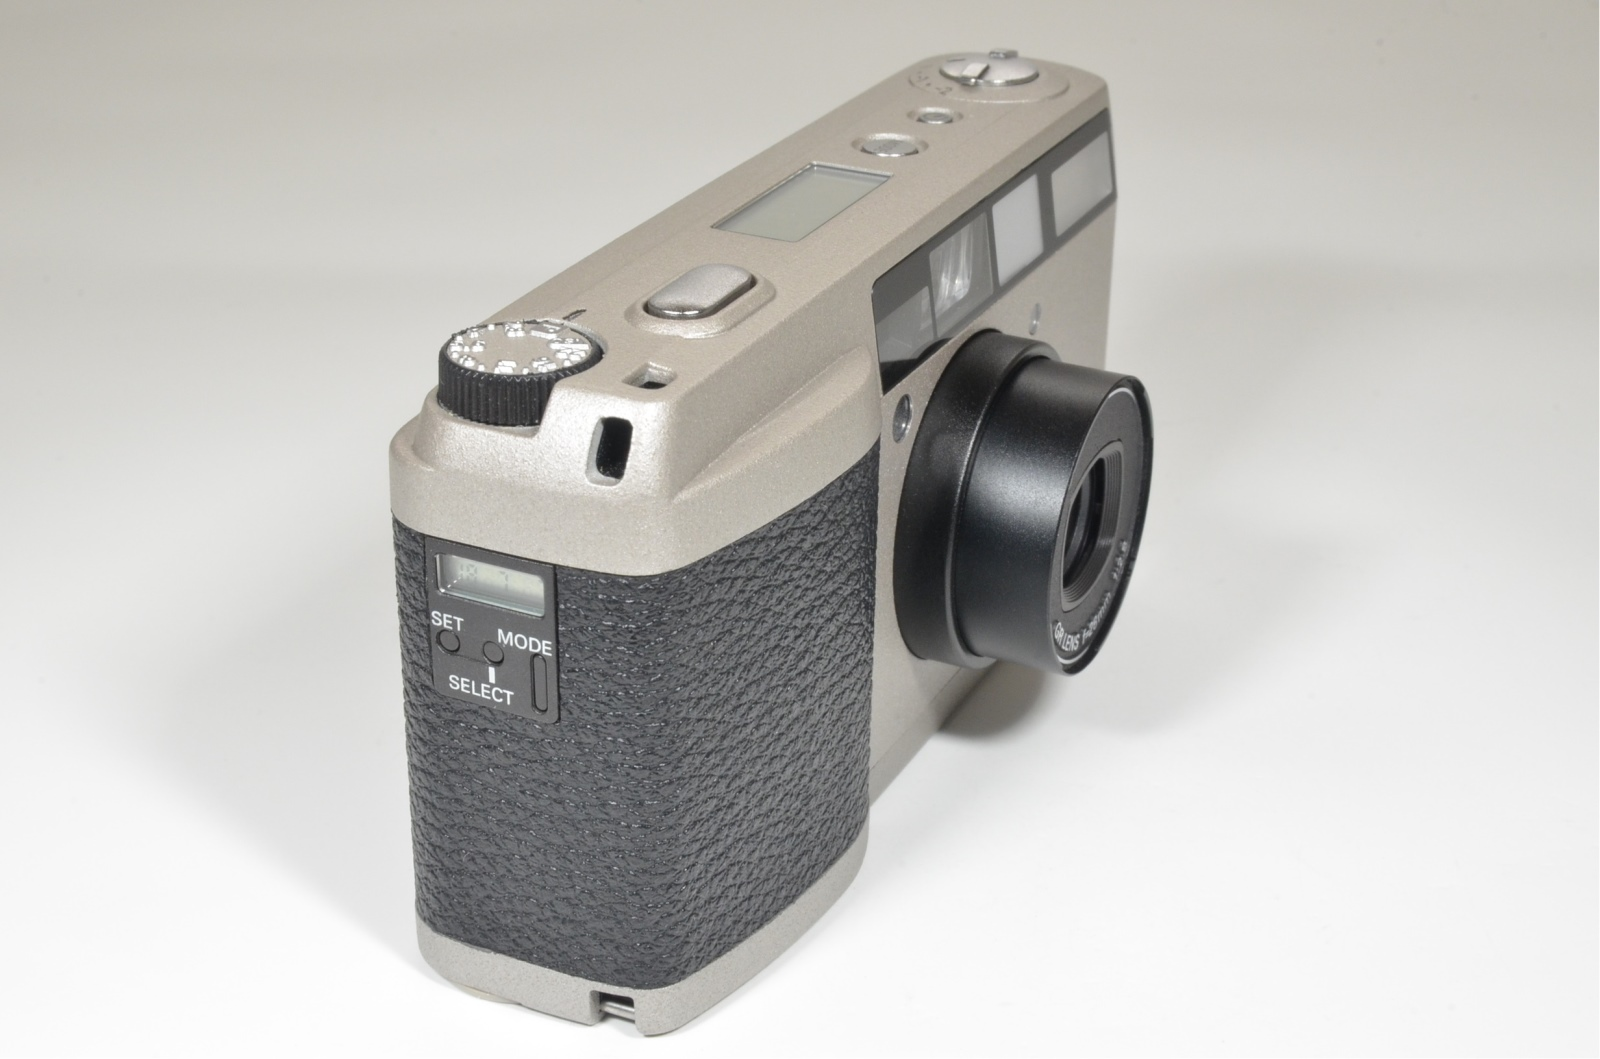 ricoh gr1v date silver 28mm f2.8 point & shoot 35mm film camera